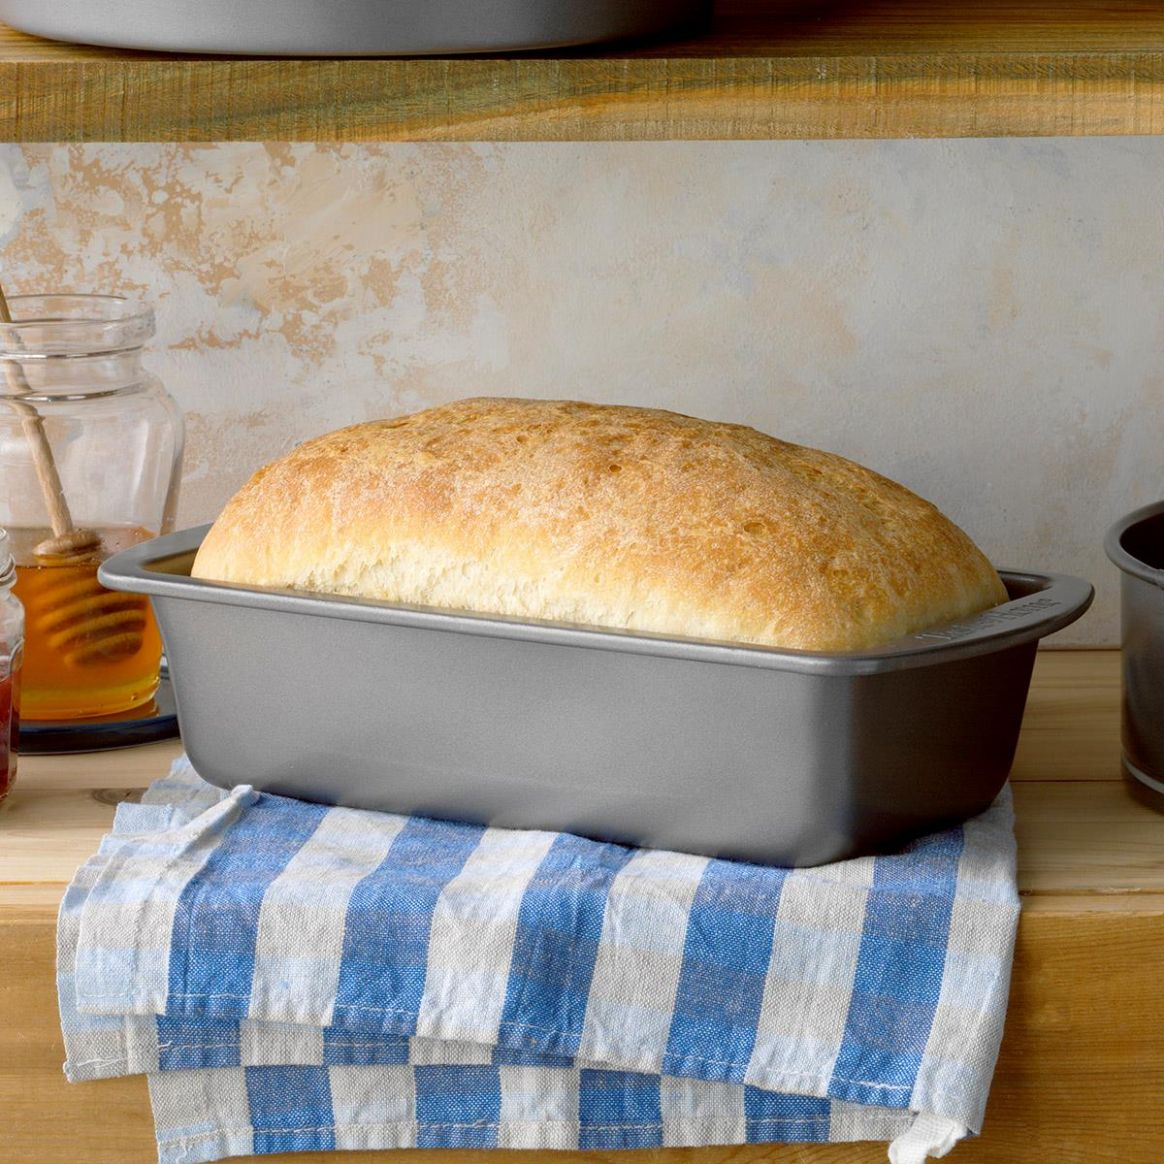 Basic Homemade Bread - Simple Recipes Using Bread